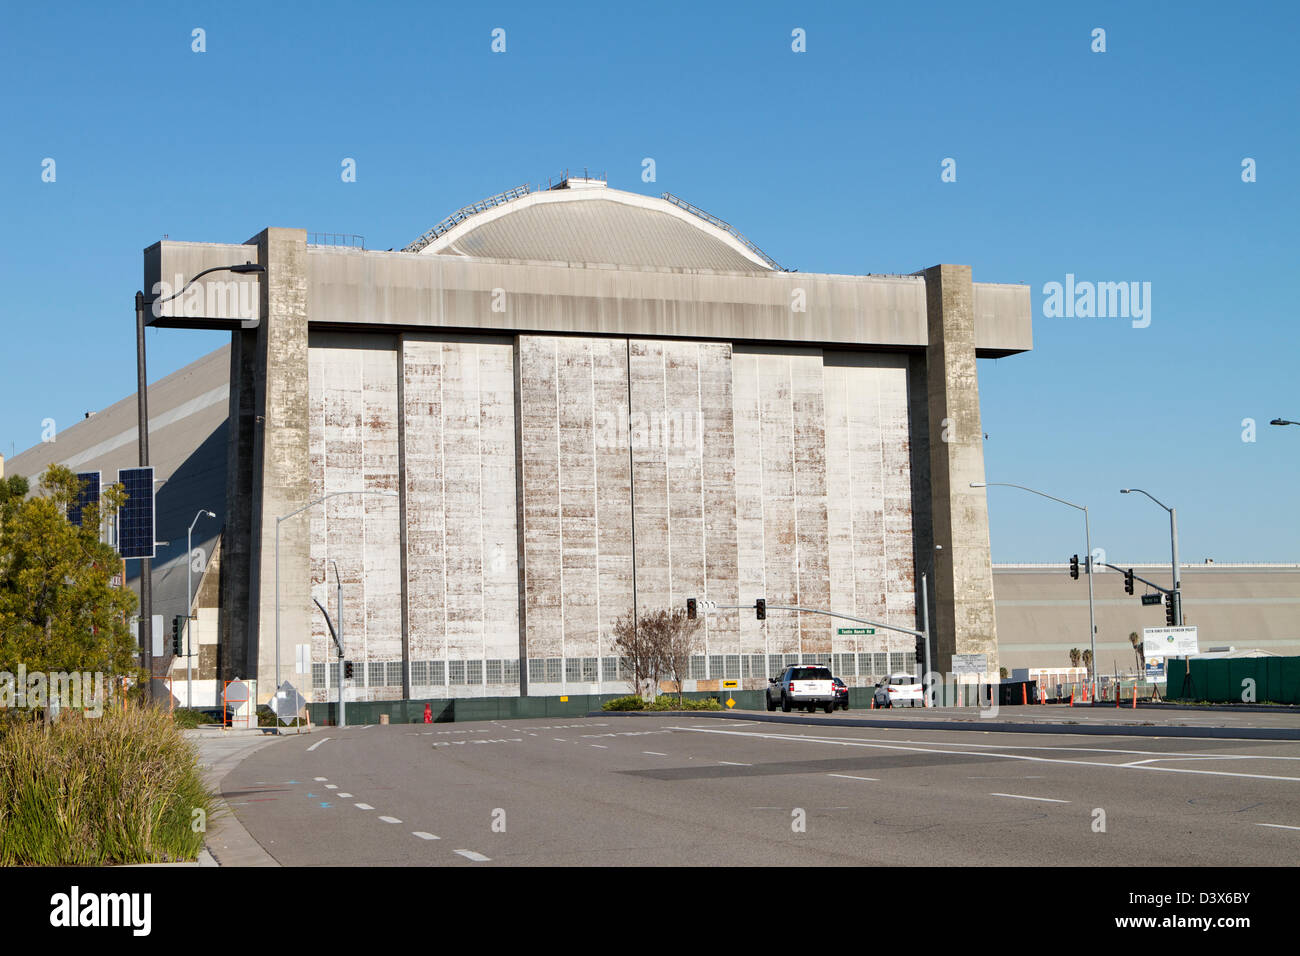 Blimp hangars at the former U.S. Navy and Marine Corps air station in Tustin, California. - Stock Image